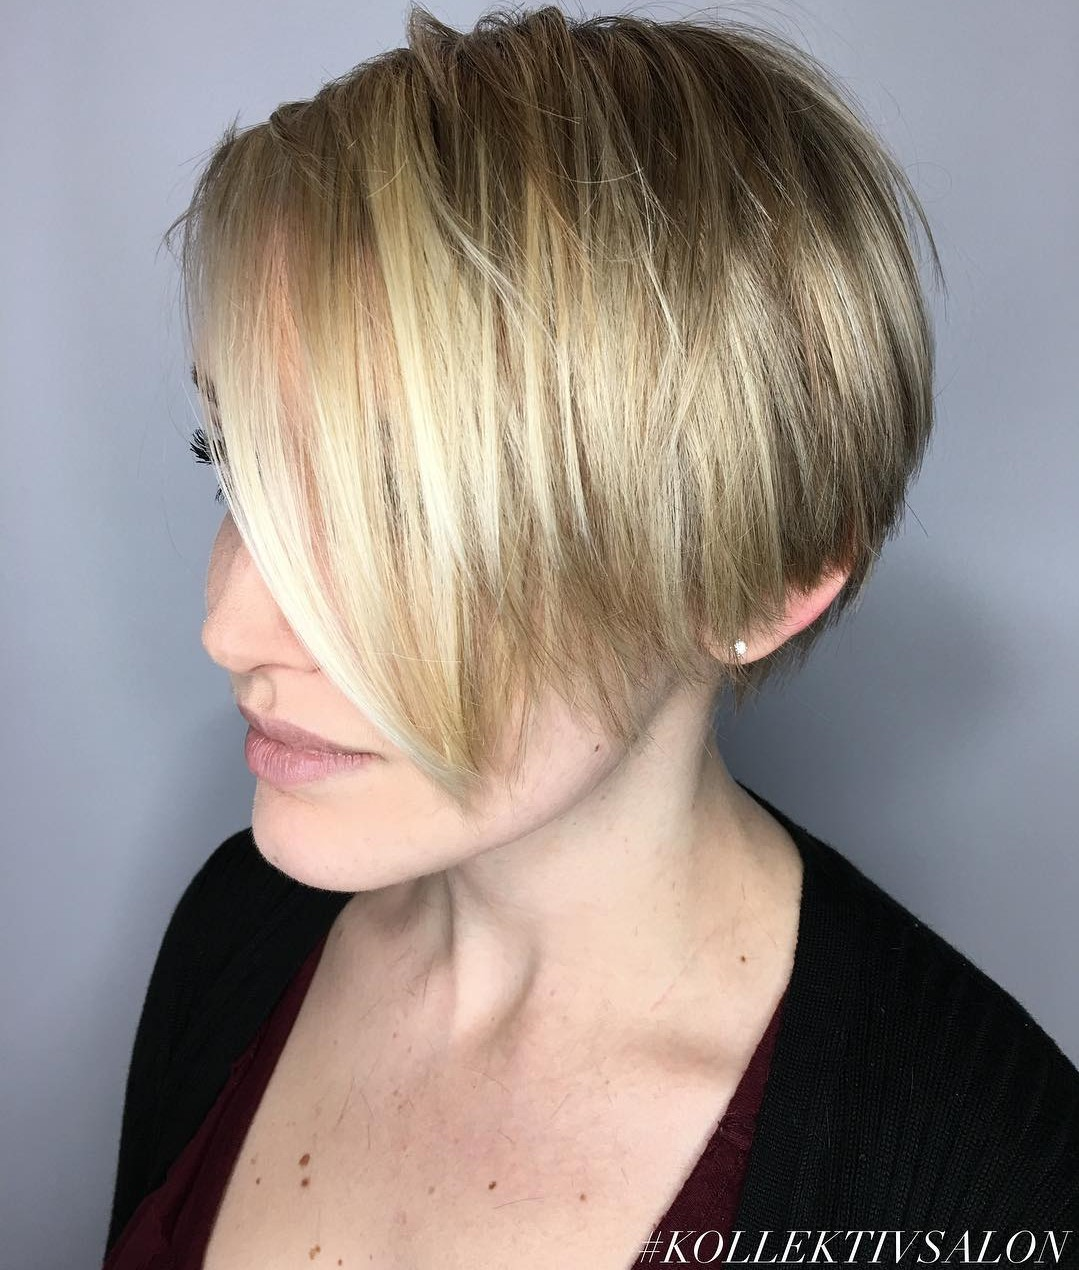 Long Pixie Bob with a Side Part